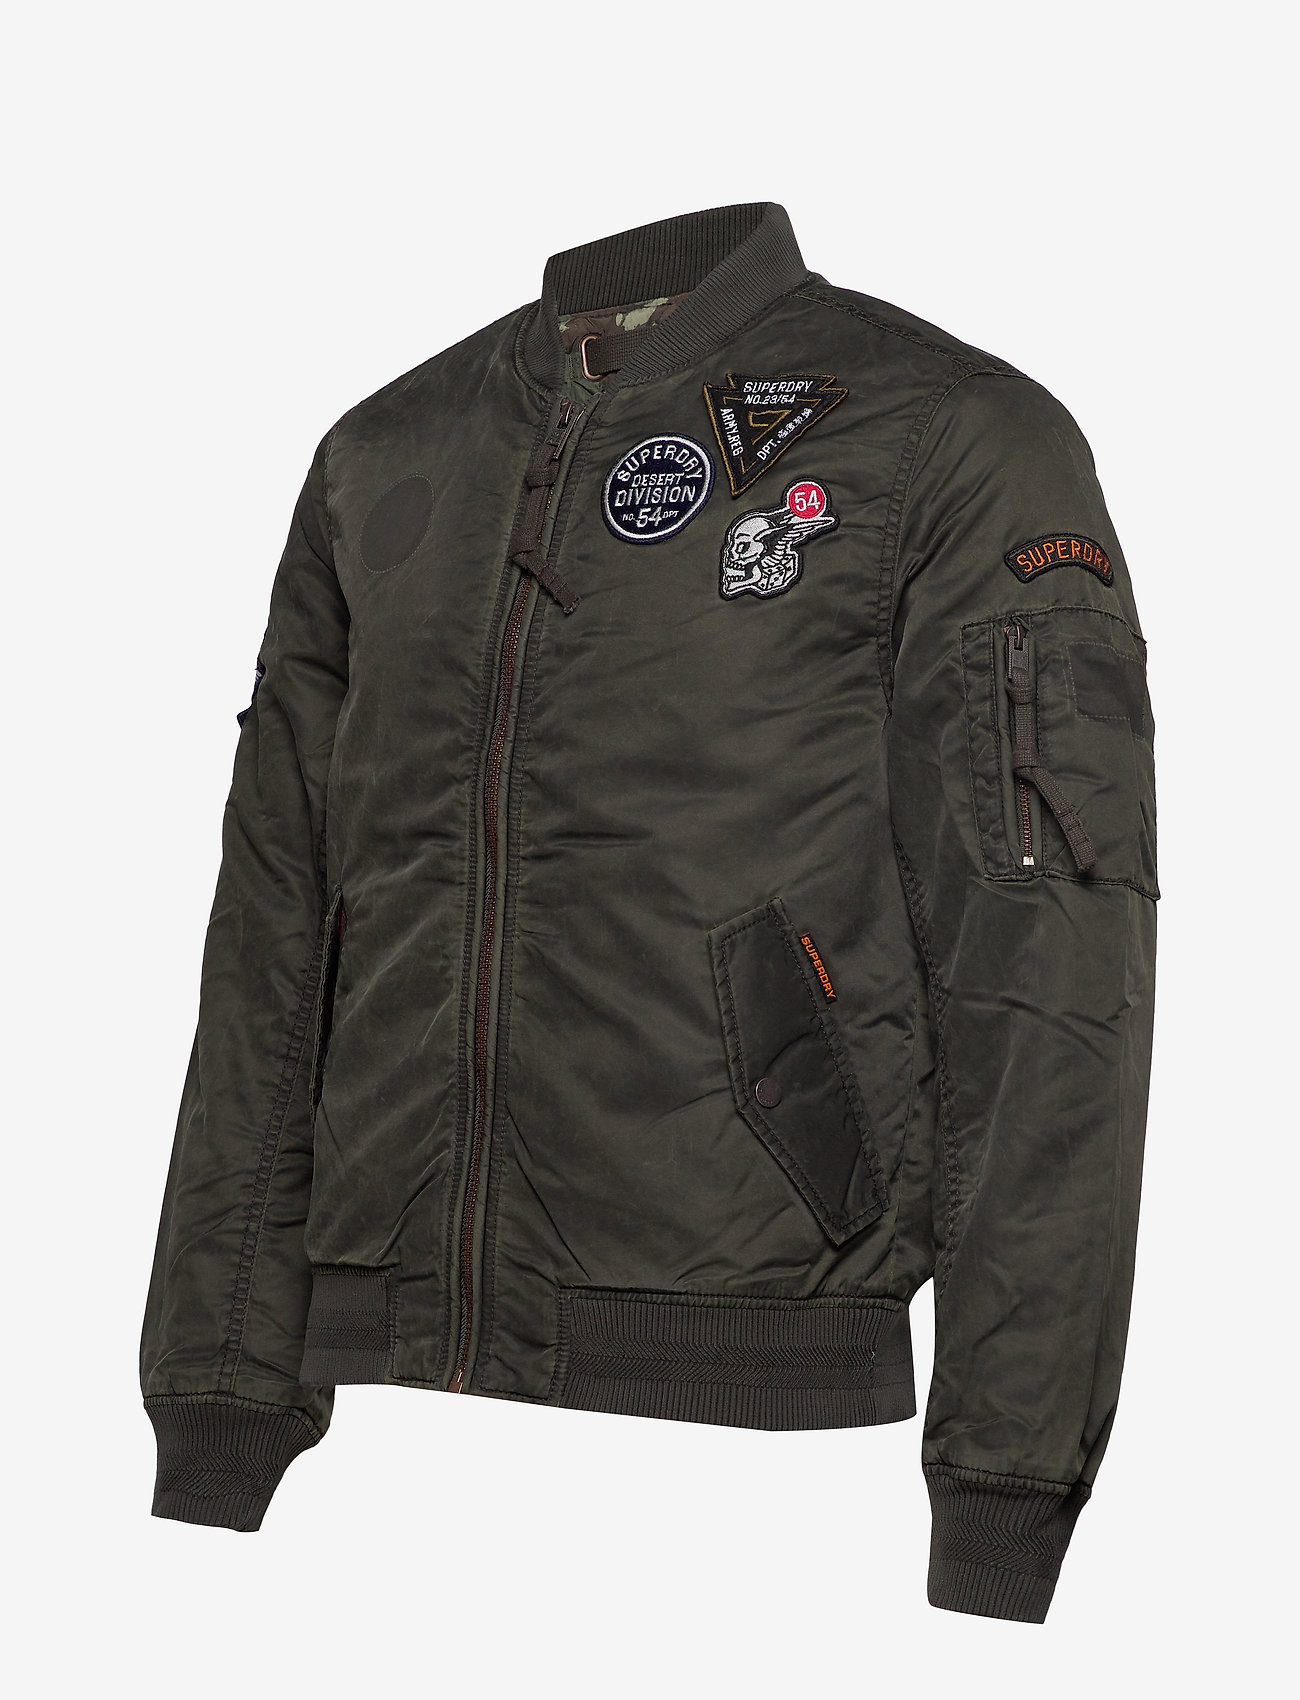 Superdry LIMITED ISSUE FLIGHT BOMBER - Jakker og frakker WASHED KHAKI - Menn Klær